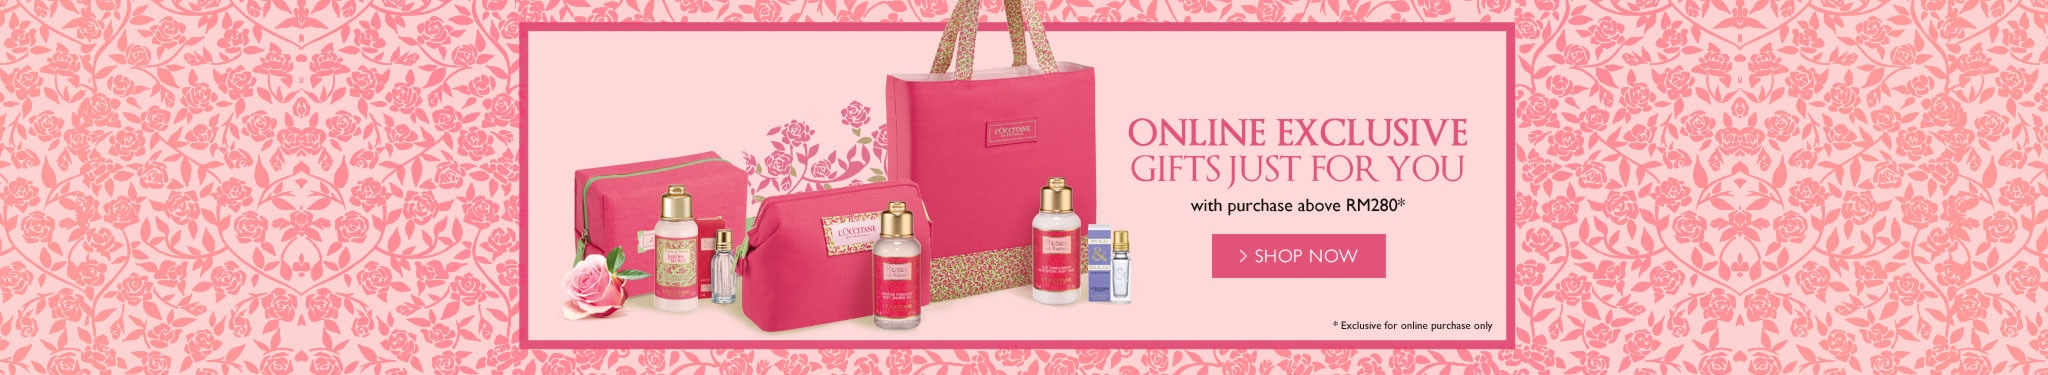 Your Online Exclusive Gifts